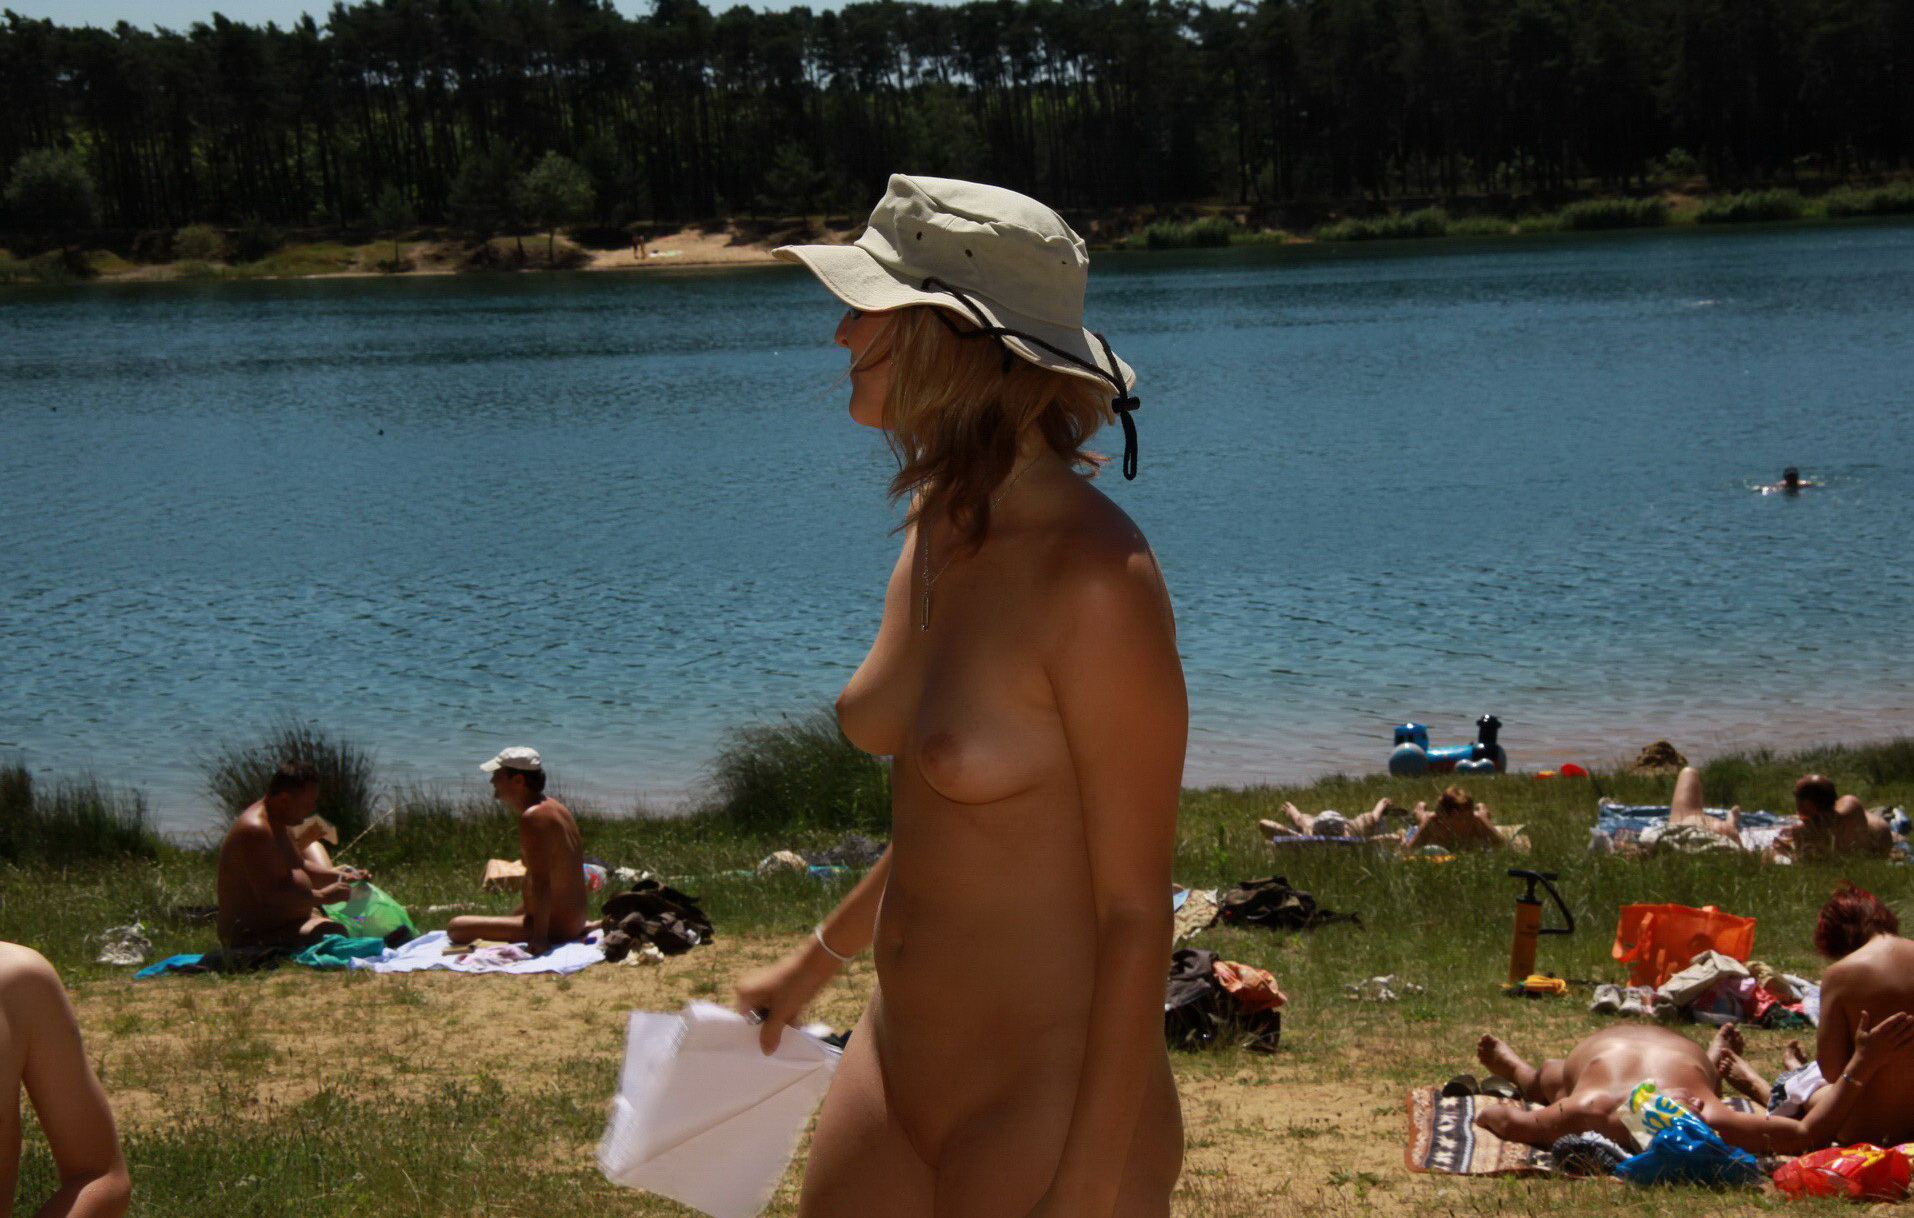 https://voyeurpapa.com/wp-content/uploads/2016/12/Nudists-family-nude-beach-73.jpg